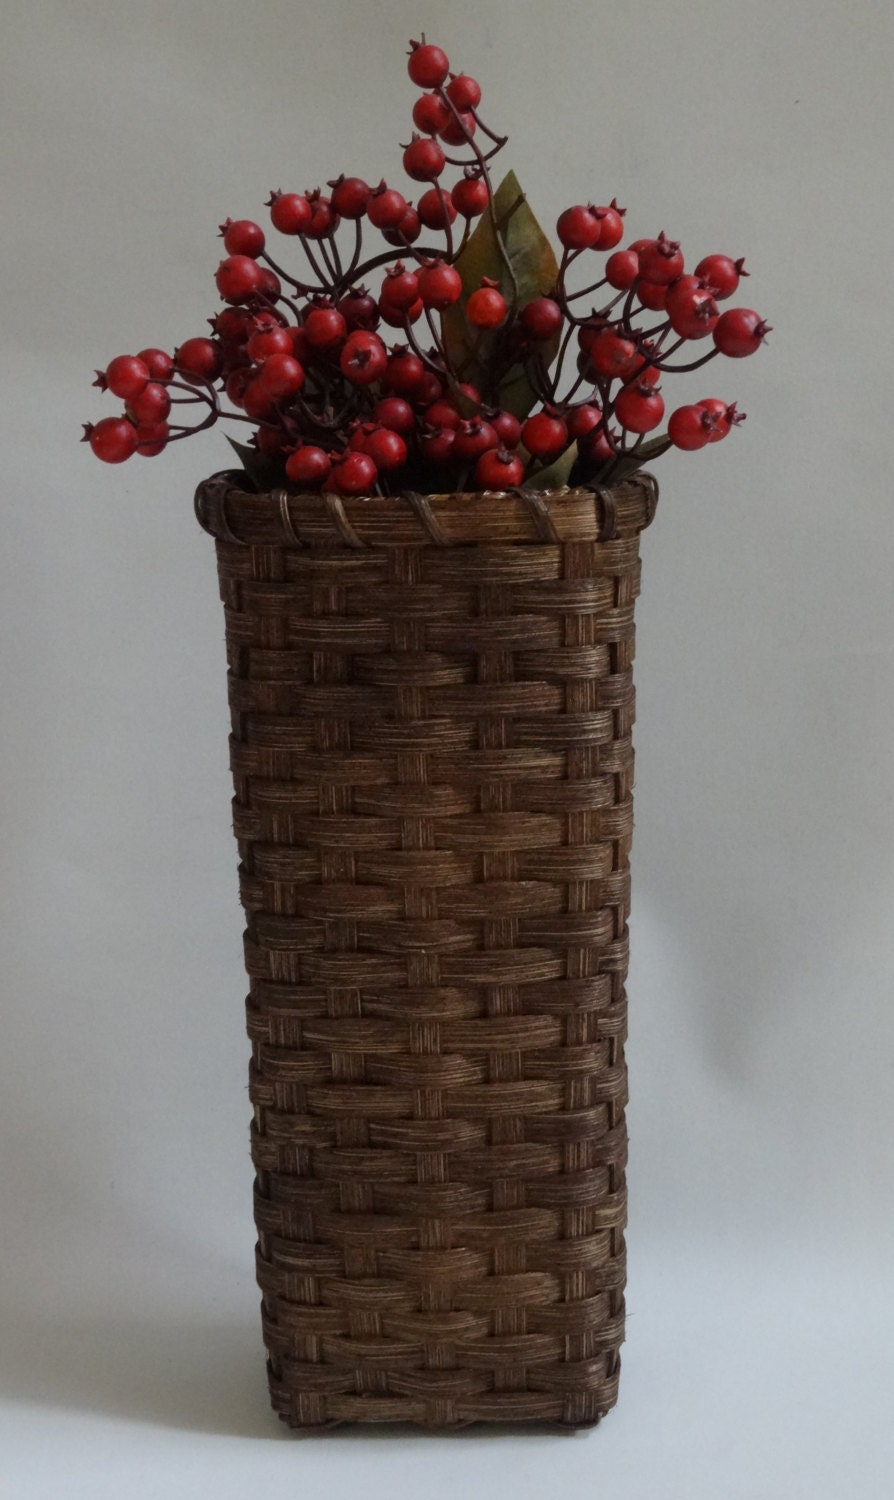 Wall basket wall decor handwoven basket - Decorative basket wall art ...